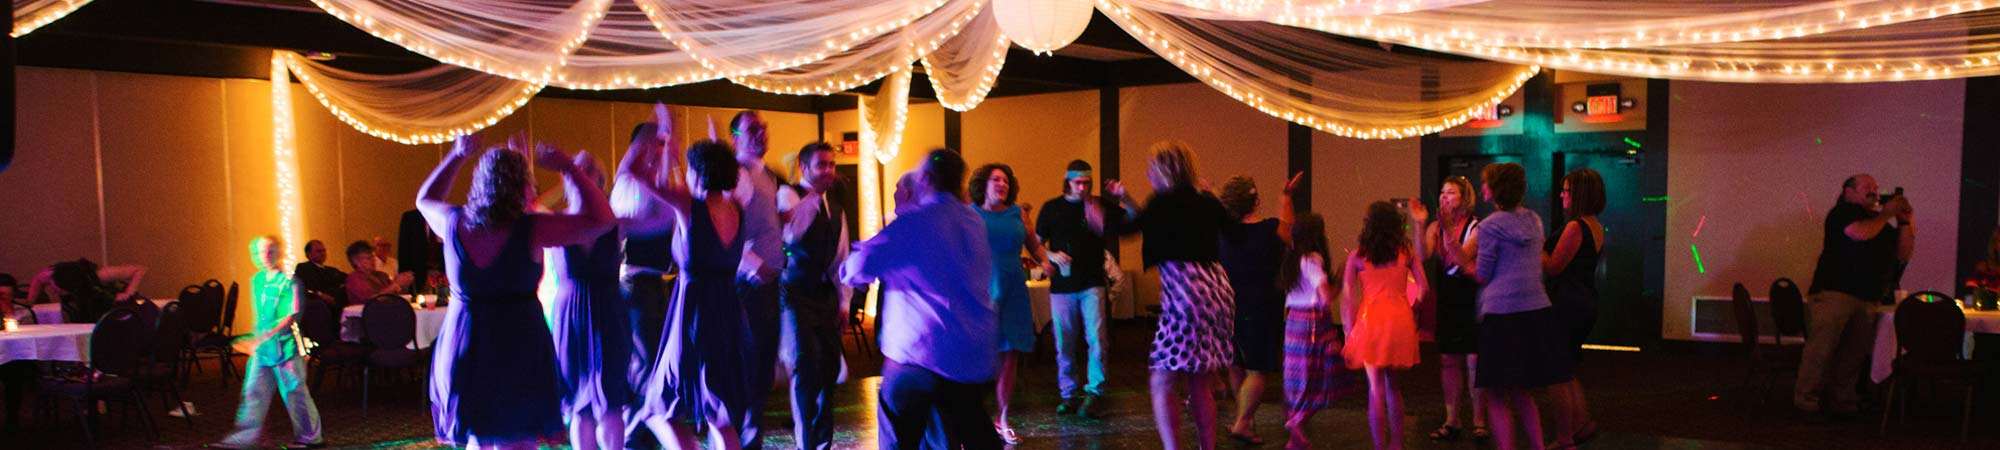 slide-wedding_dance_2000x450